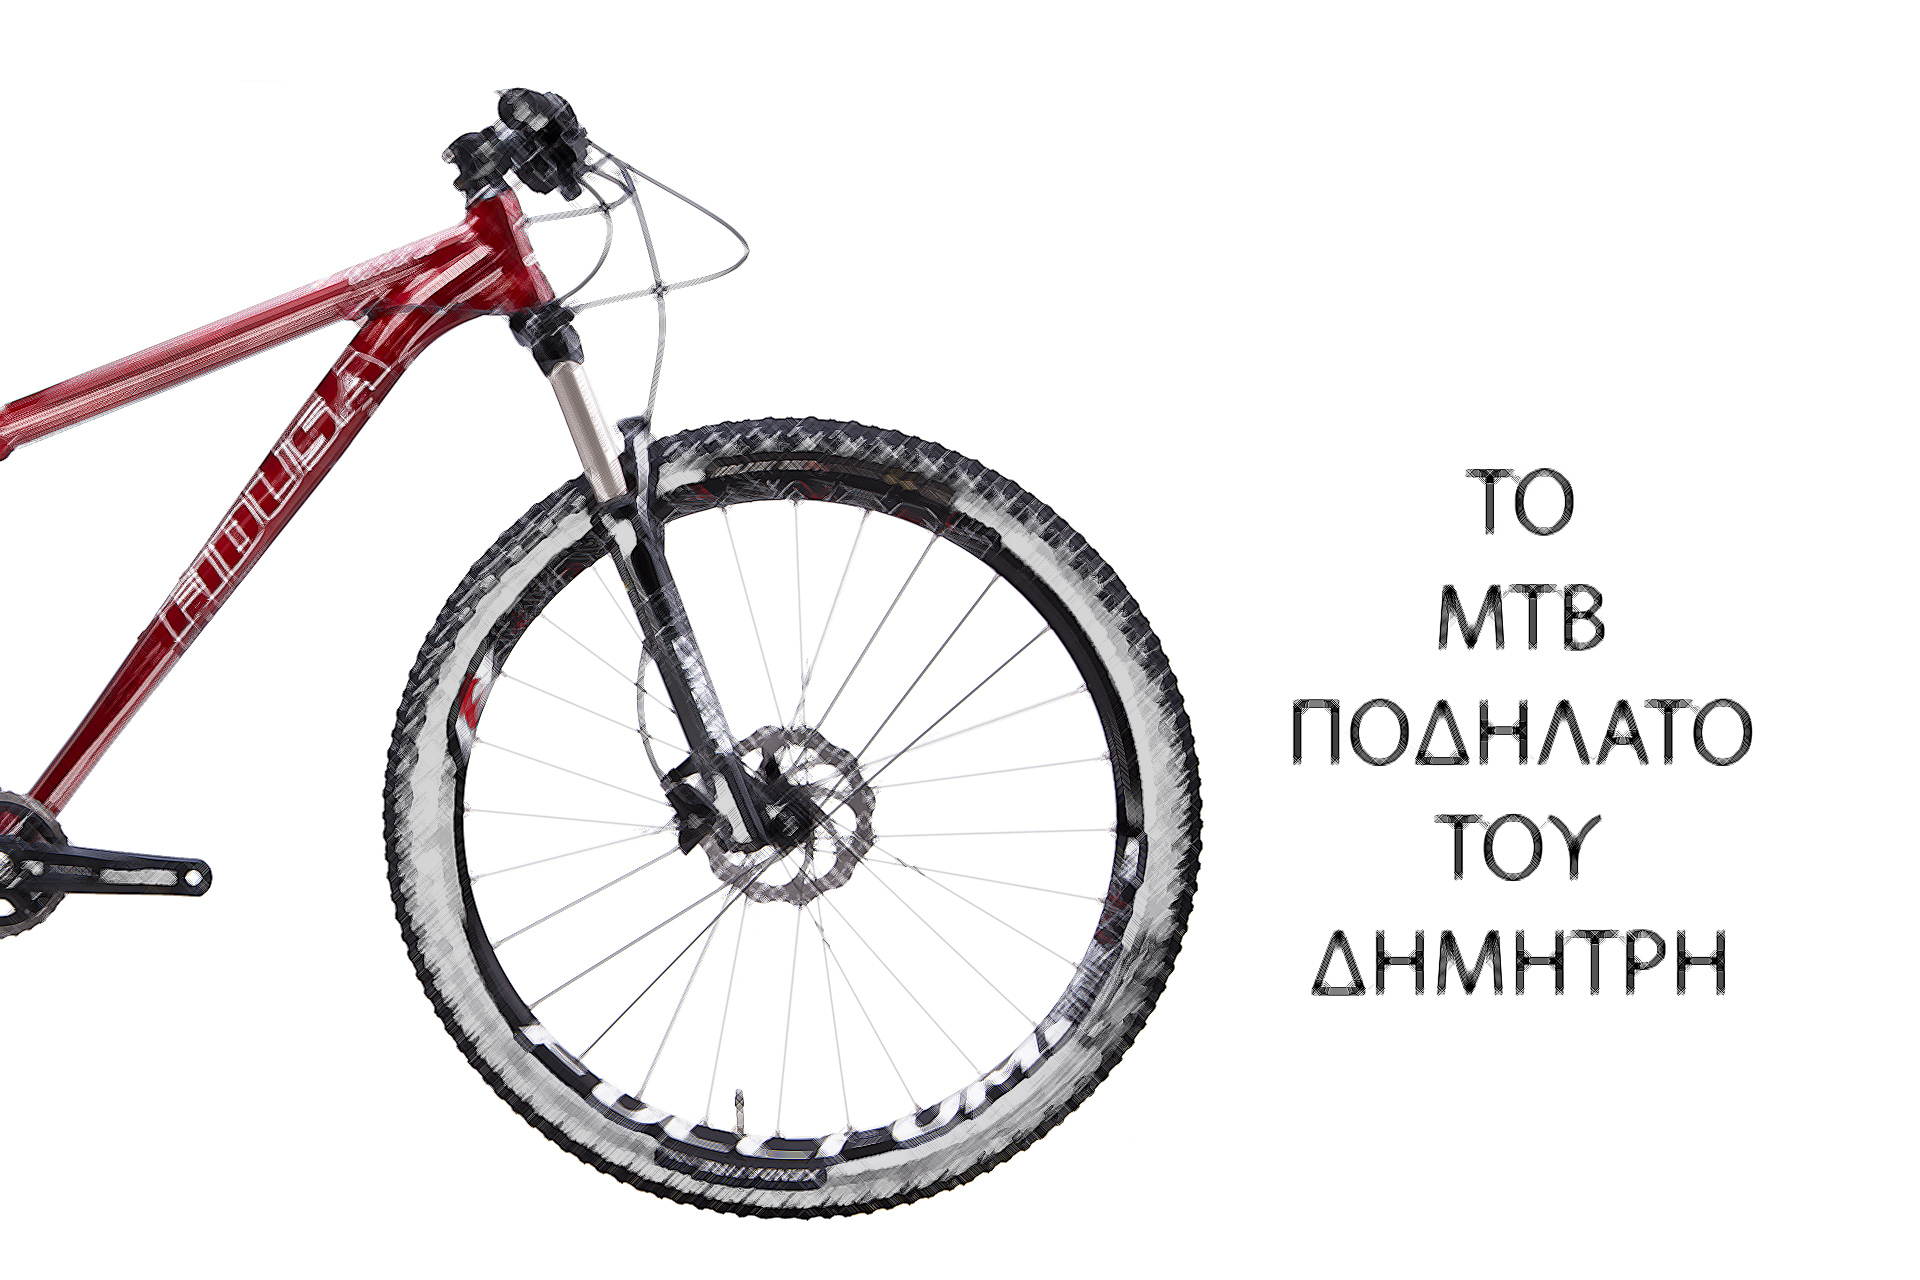 mtb-alloy-red-marble-fidusa-sketchGR To 27.5'' MTB ποδήλατο του Δημήτρη